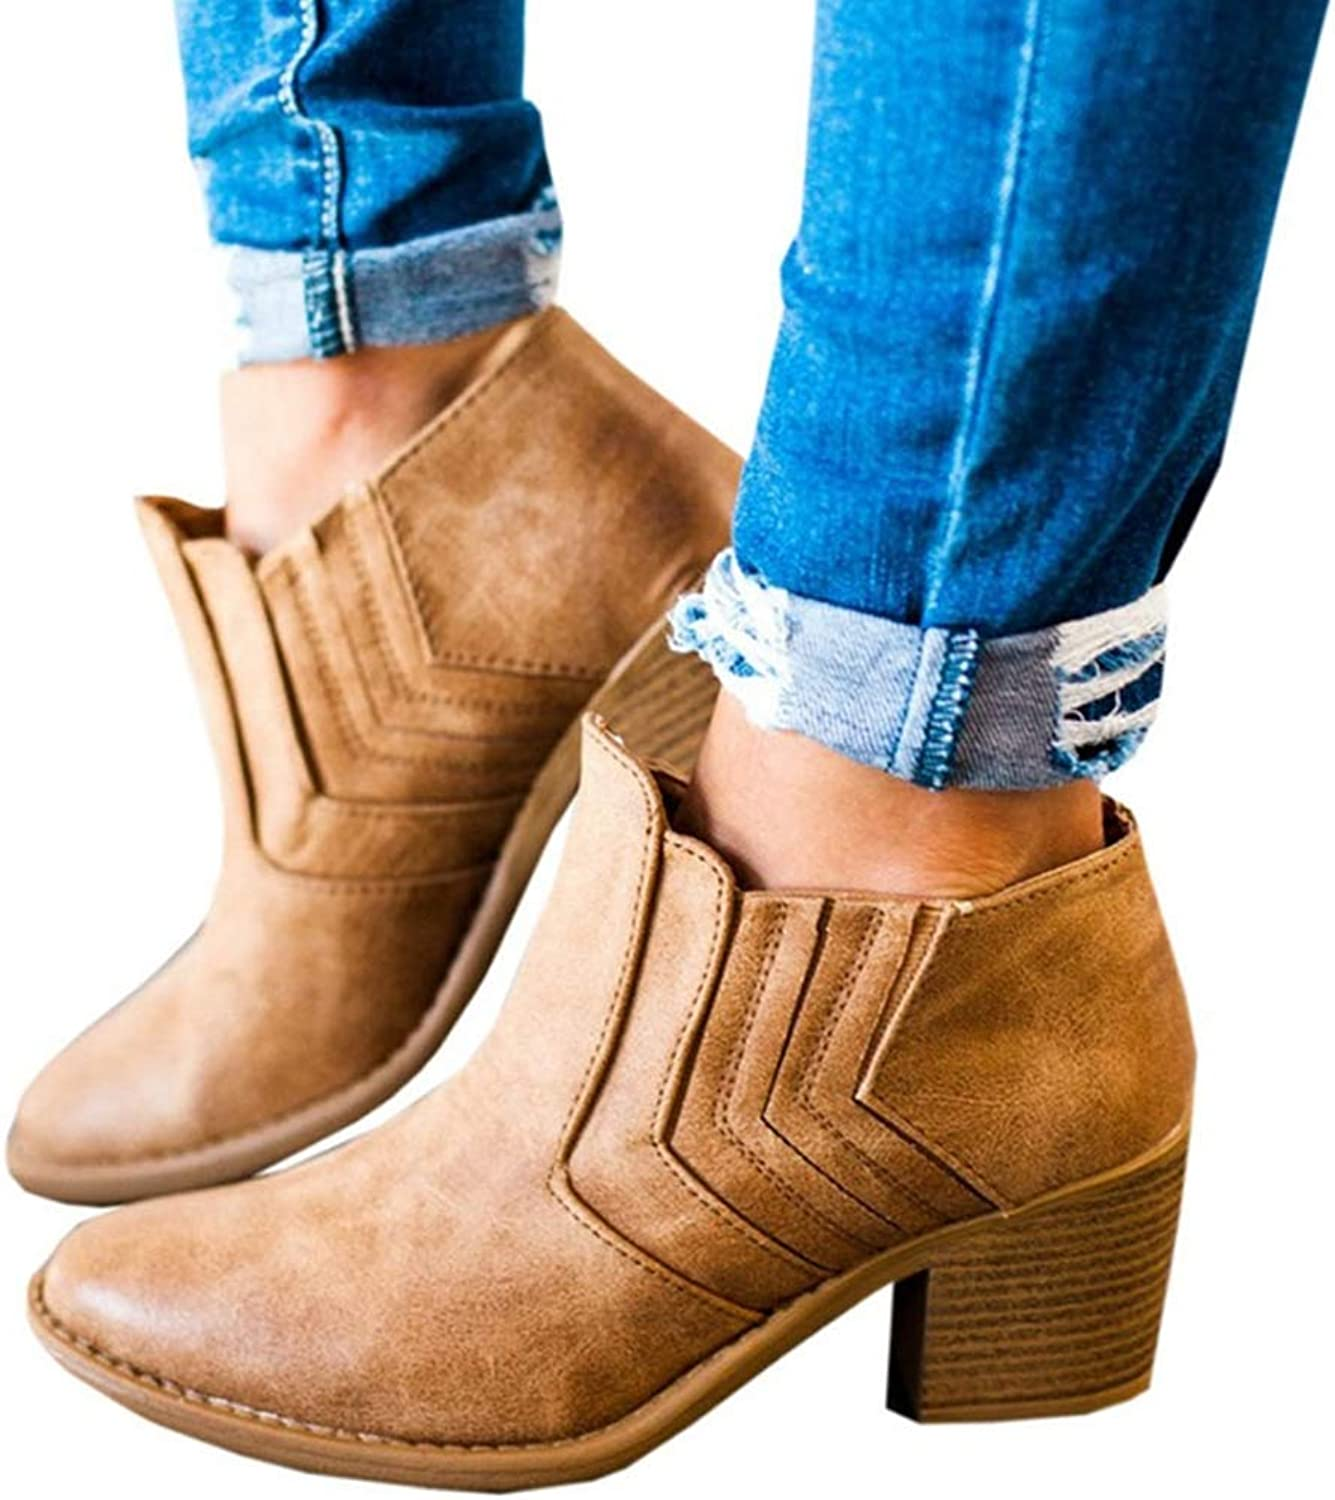 Hoxekle Autumn Female Ankle Boots Woman Squred Mid Heel Boots Slip On Ladies Short Boots Sewing Footswear shoes